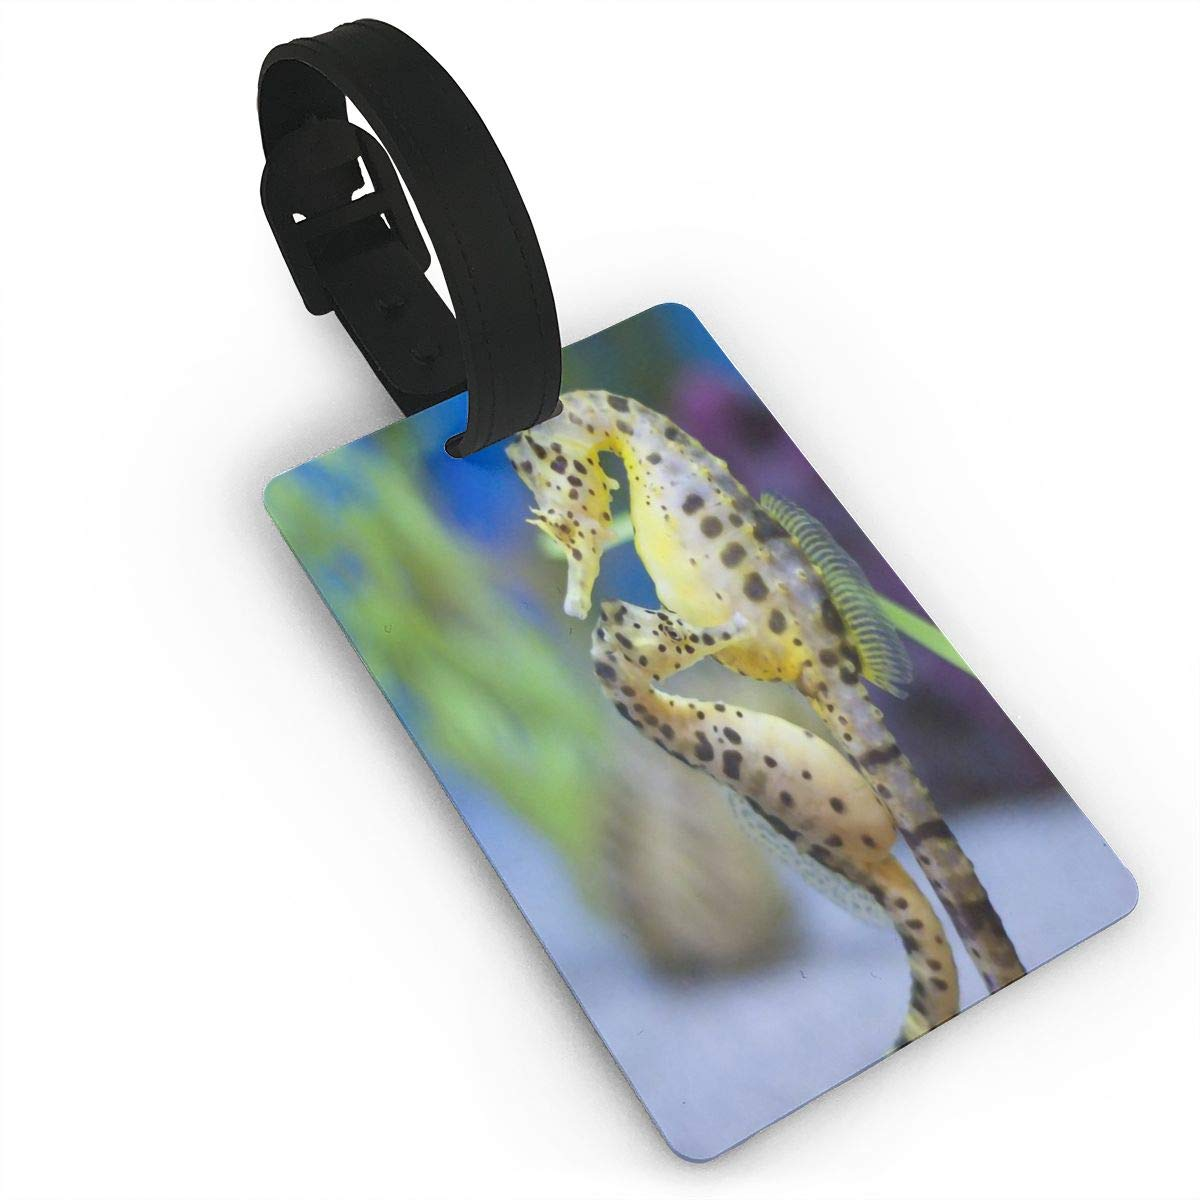 Sea Horse Handbag Tag For Travel Bag Suitcase Accessories 2 Pack Luggage Tags